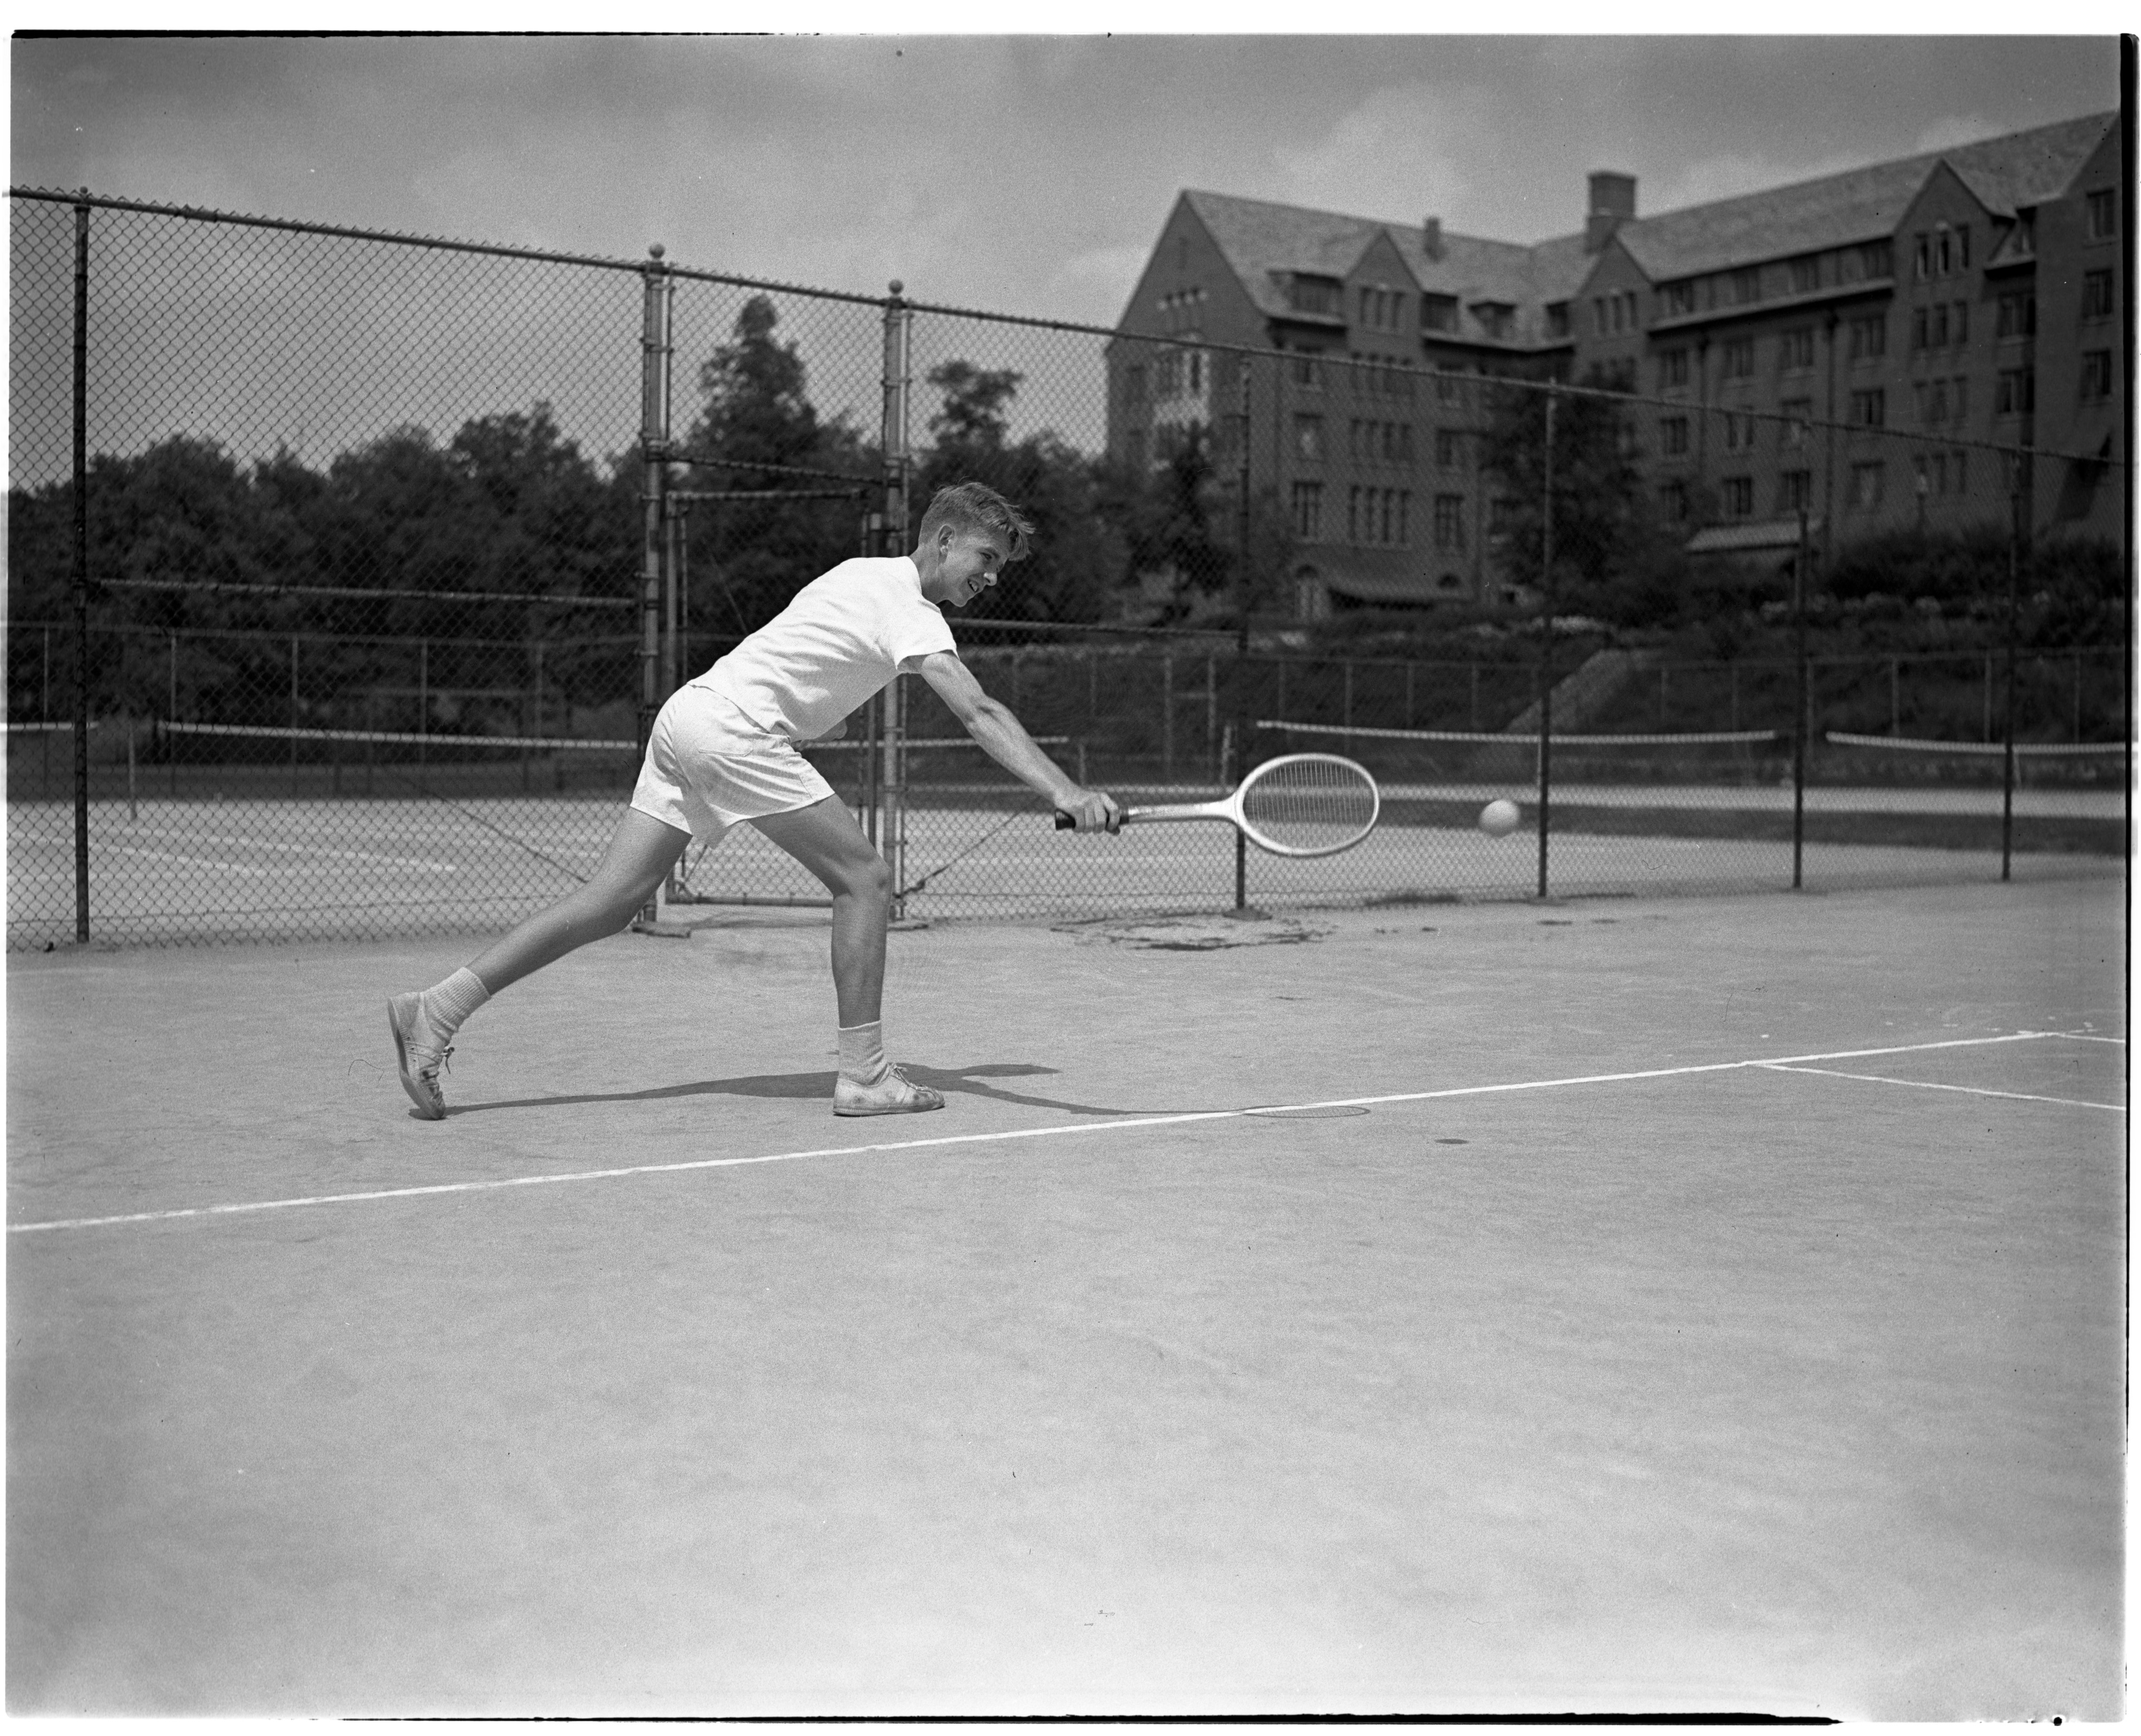 Tom Stout Tennis image